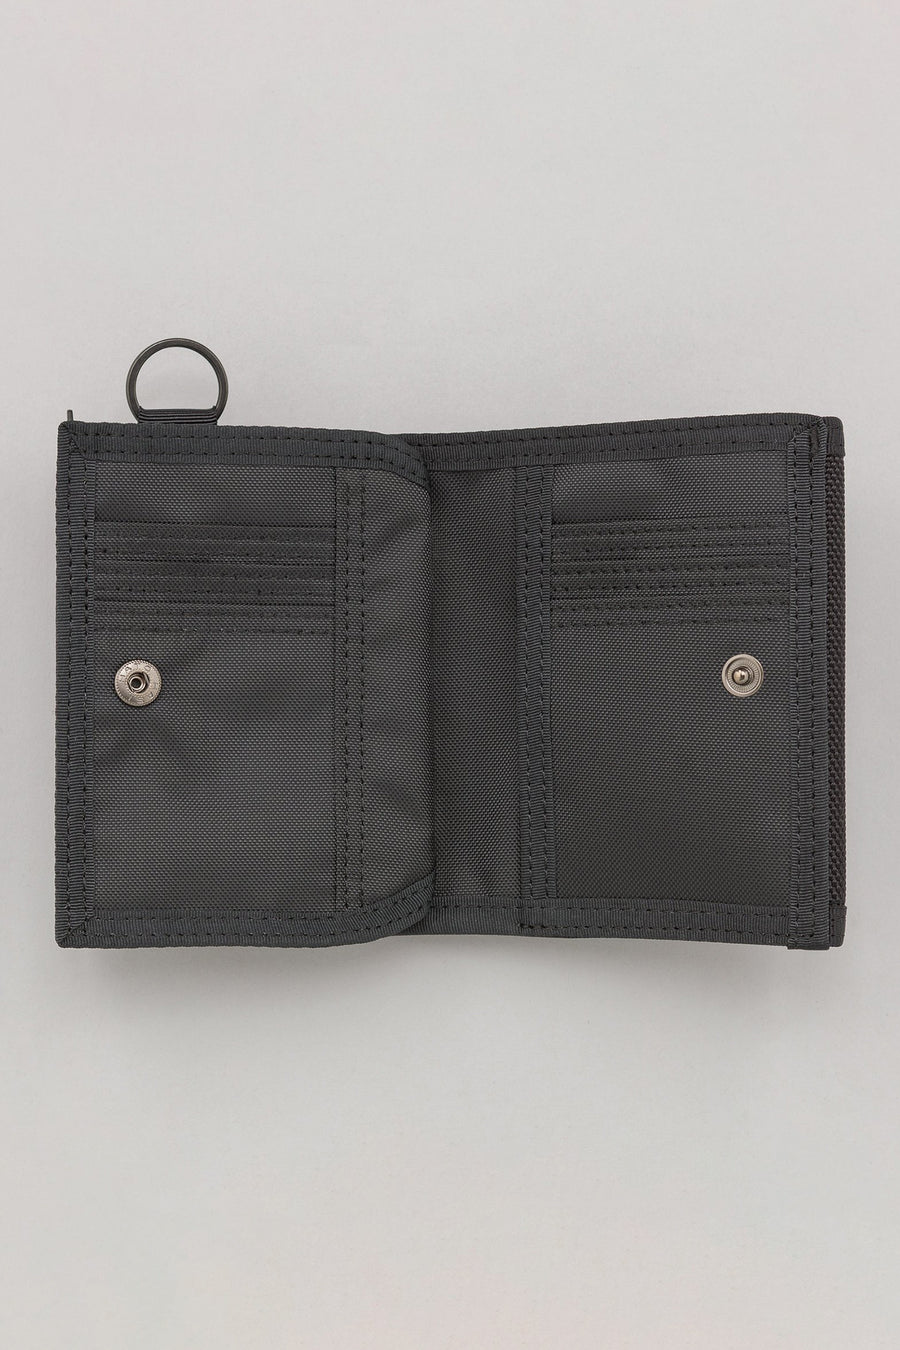 Porter HEAT Wallet in Black - Notre